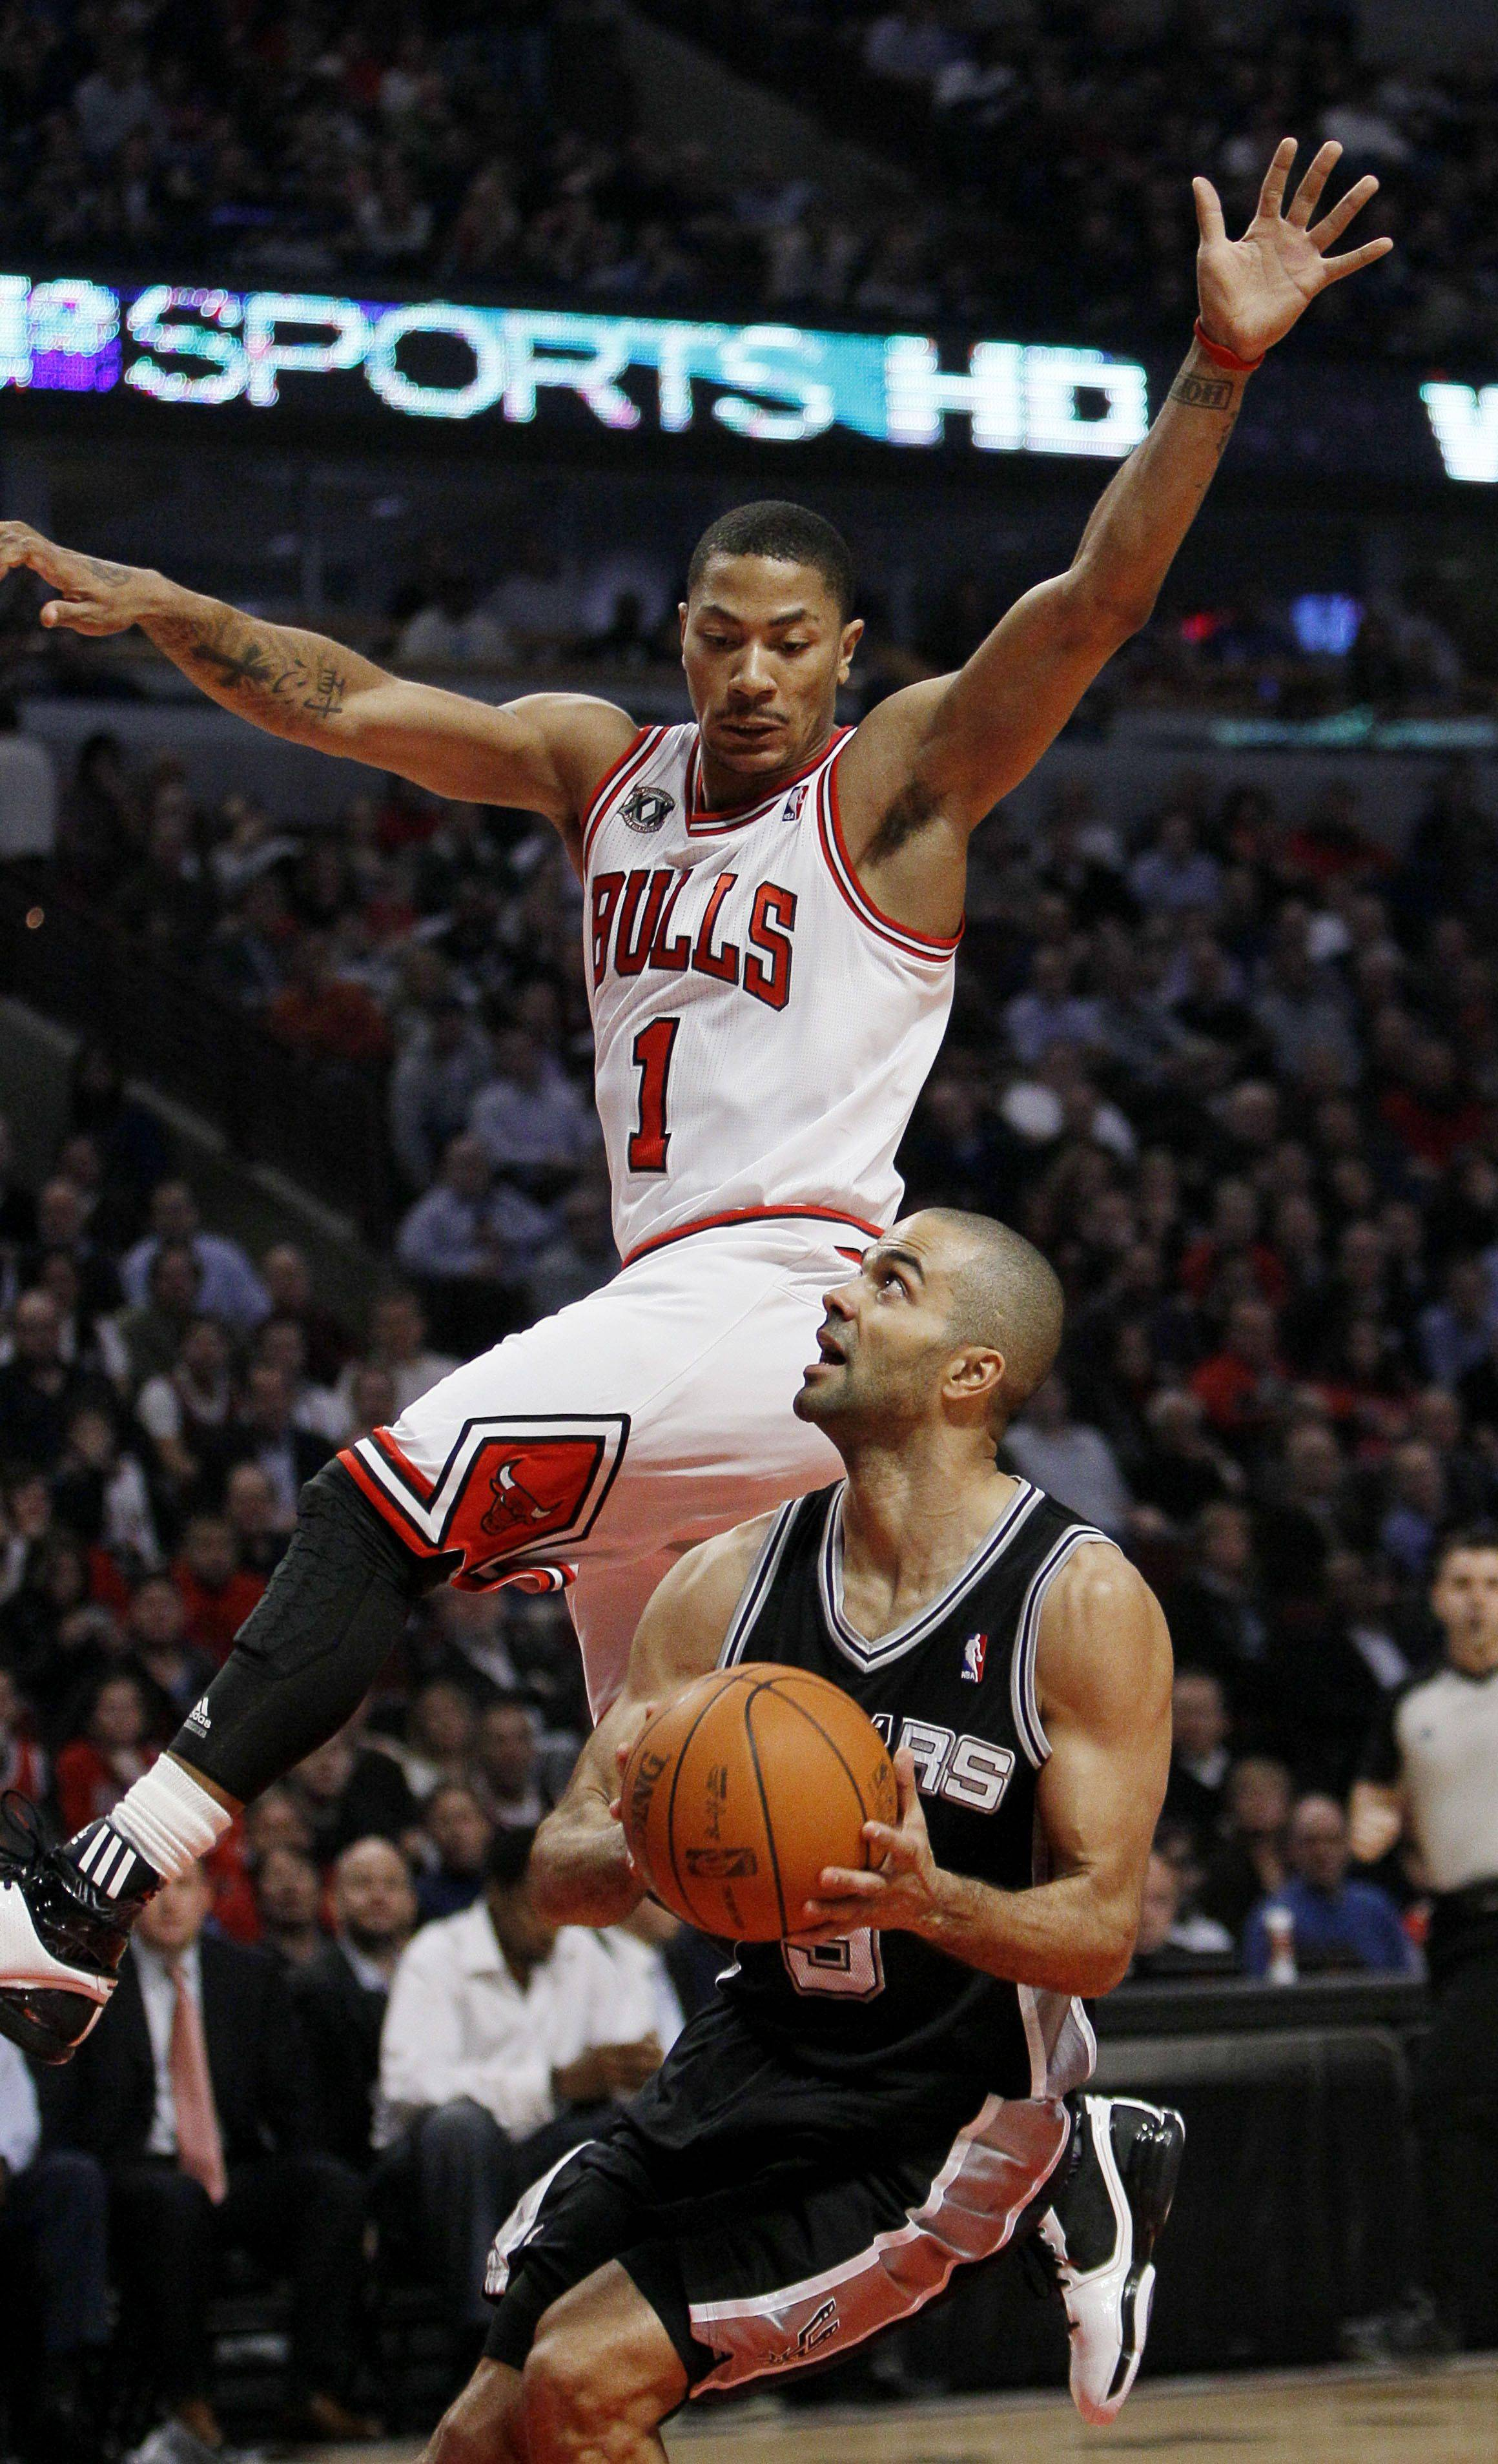 San Antonio Spurs guard Tony Parker, bottom, gets Chicago Bulls guard Derrick Rose off his feet during the first half of Thursday's game.